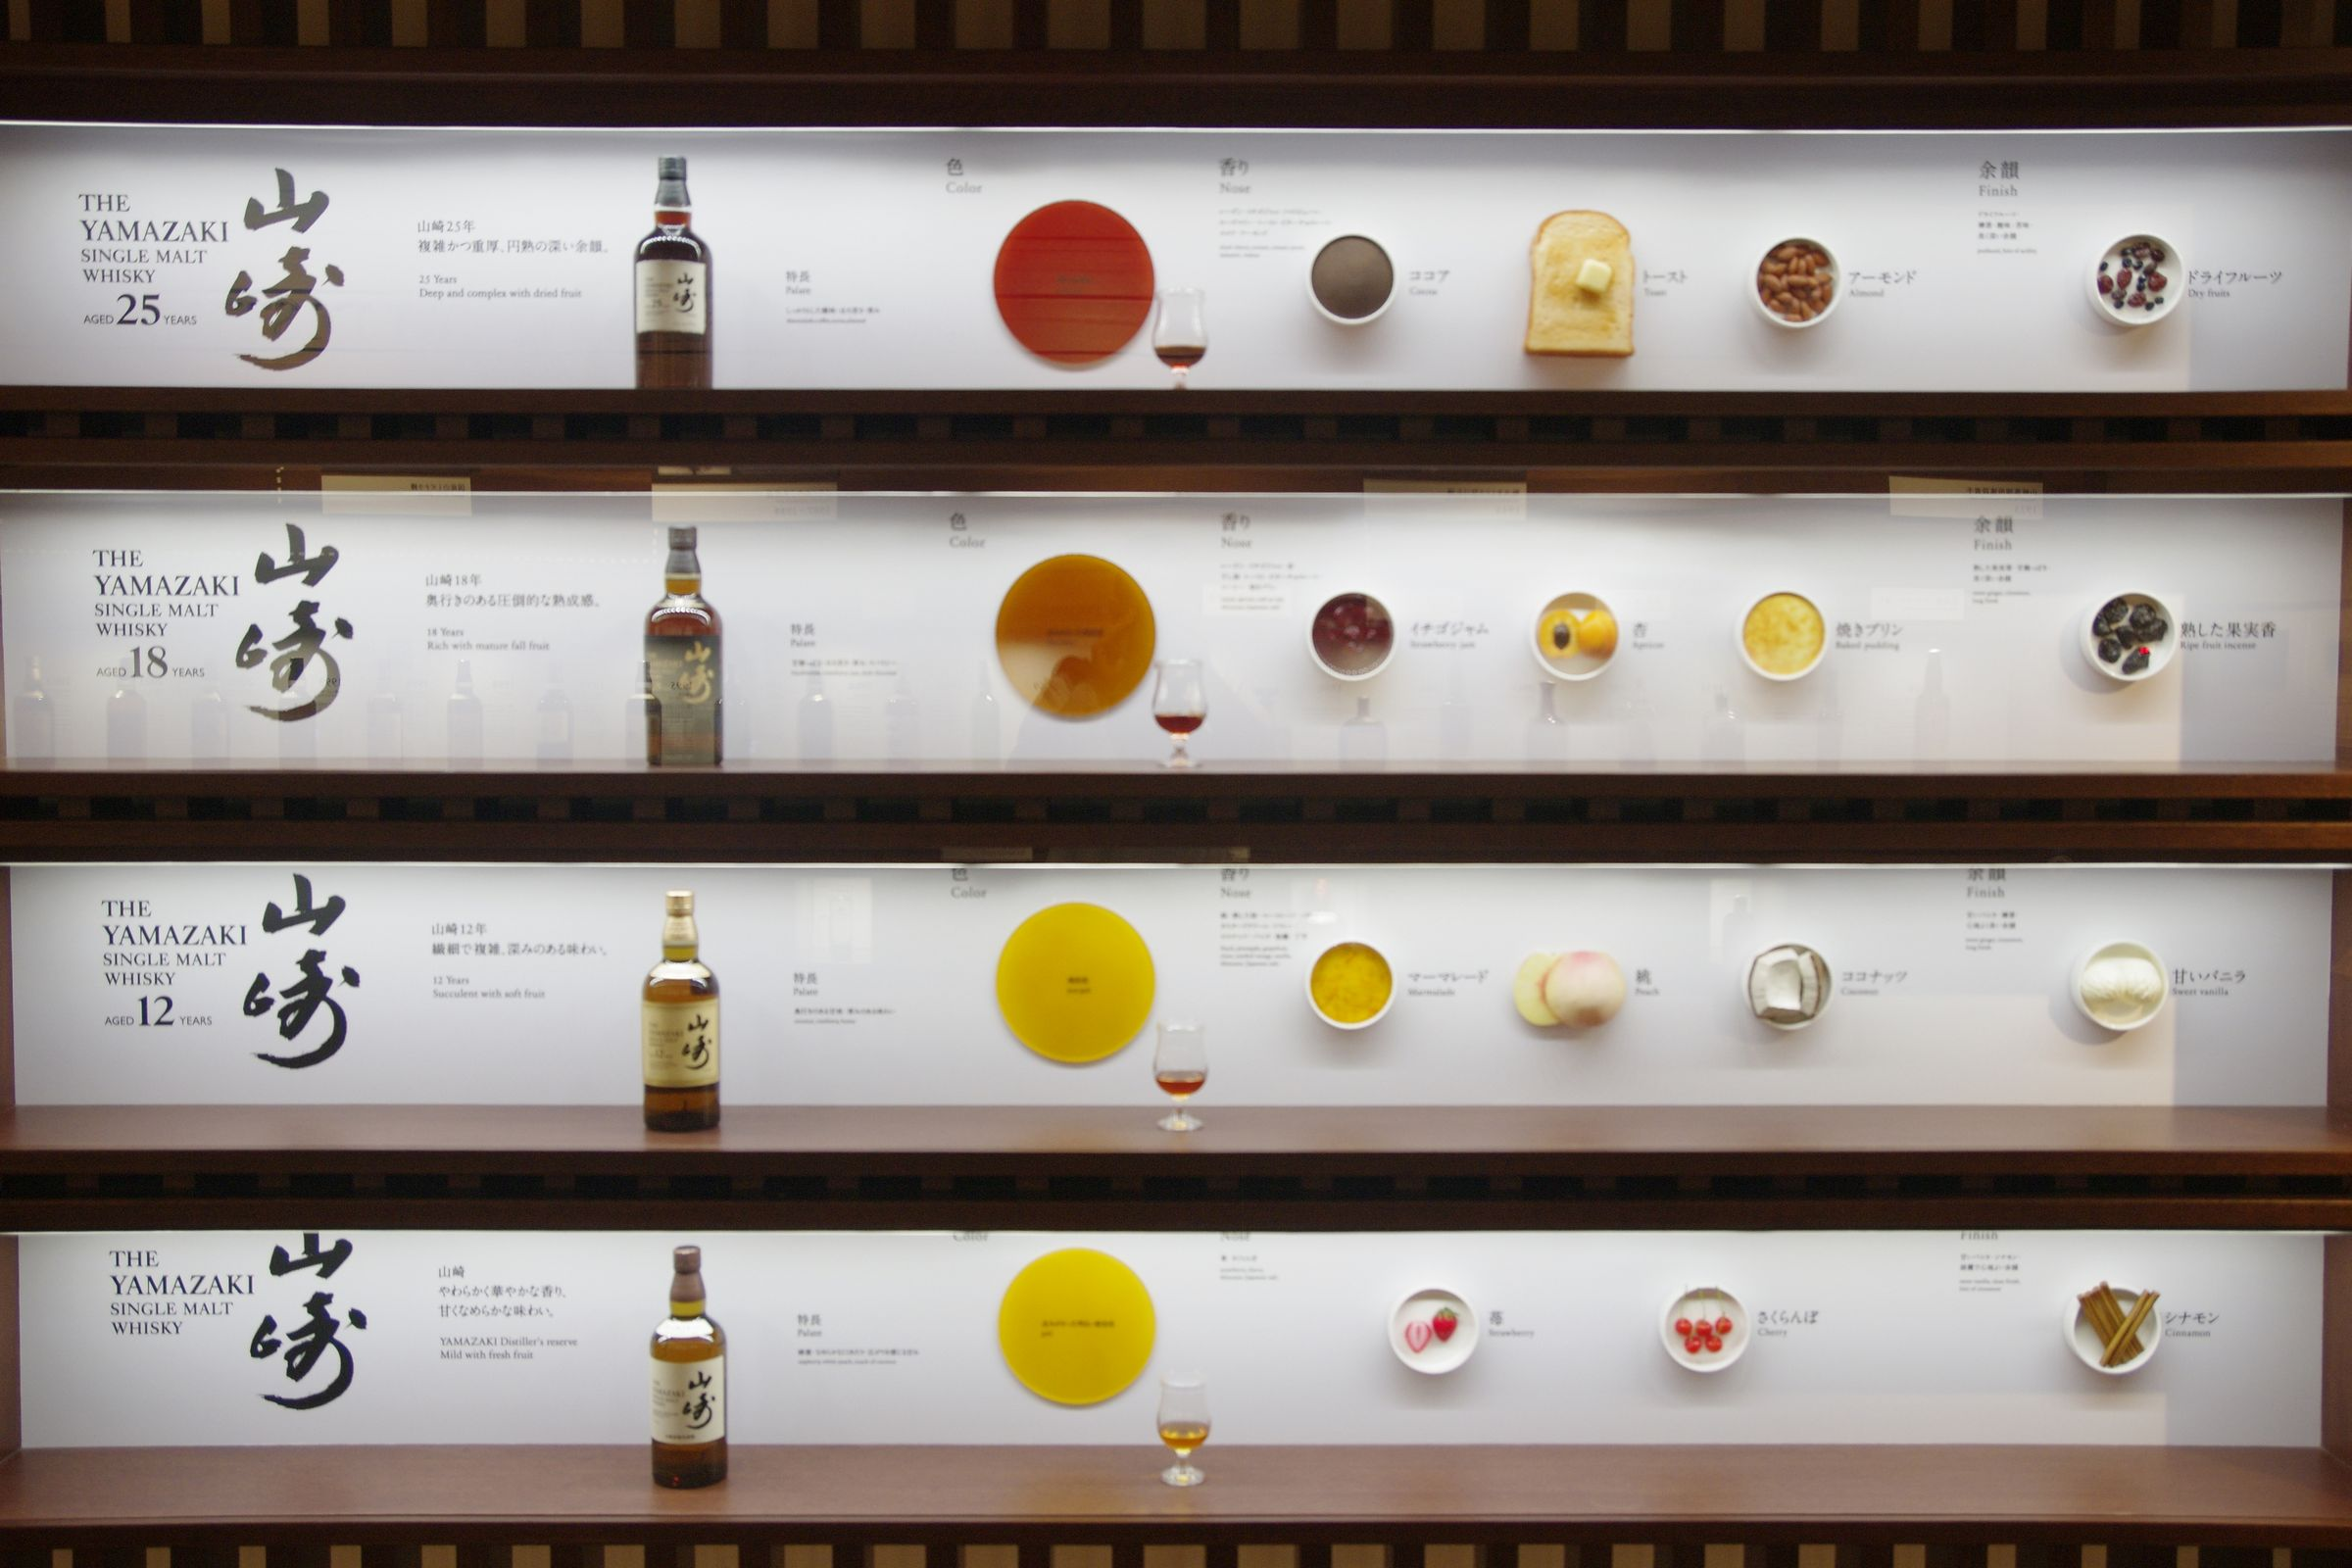 Taste Palette of Yamazaki Single Malt at different ages; Show Room at Yamazaki Distillery; 2018